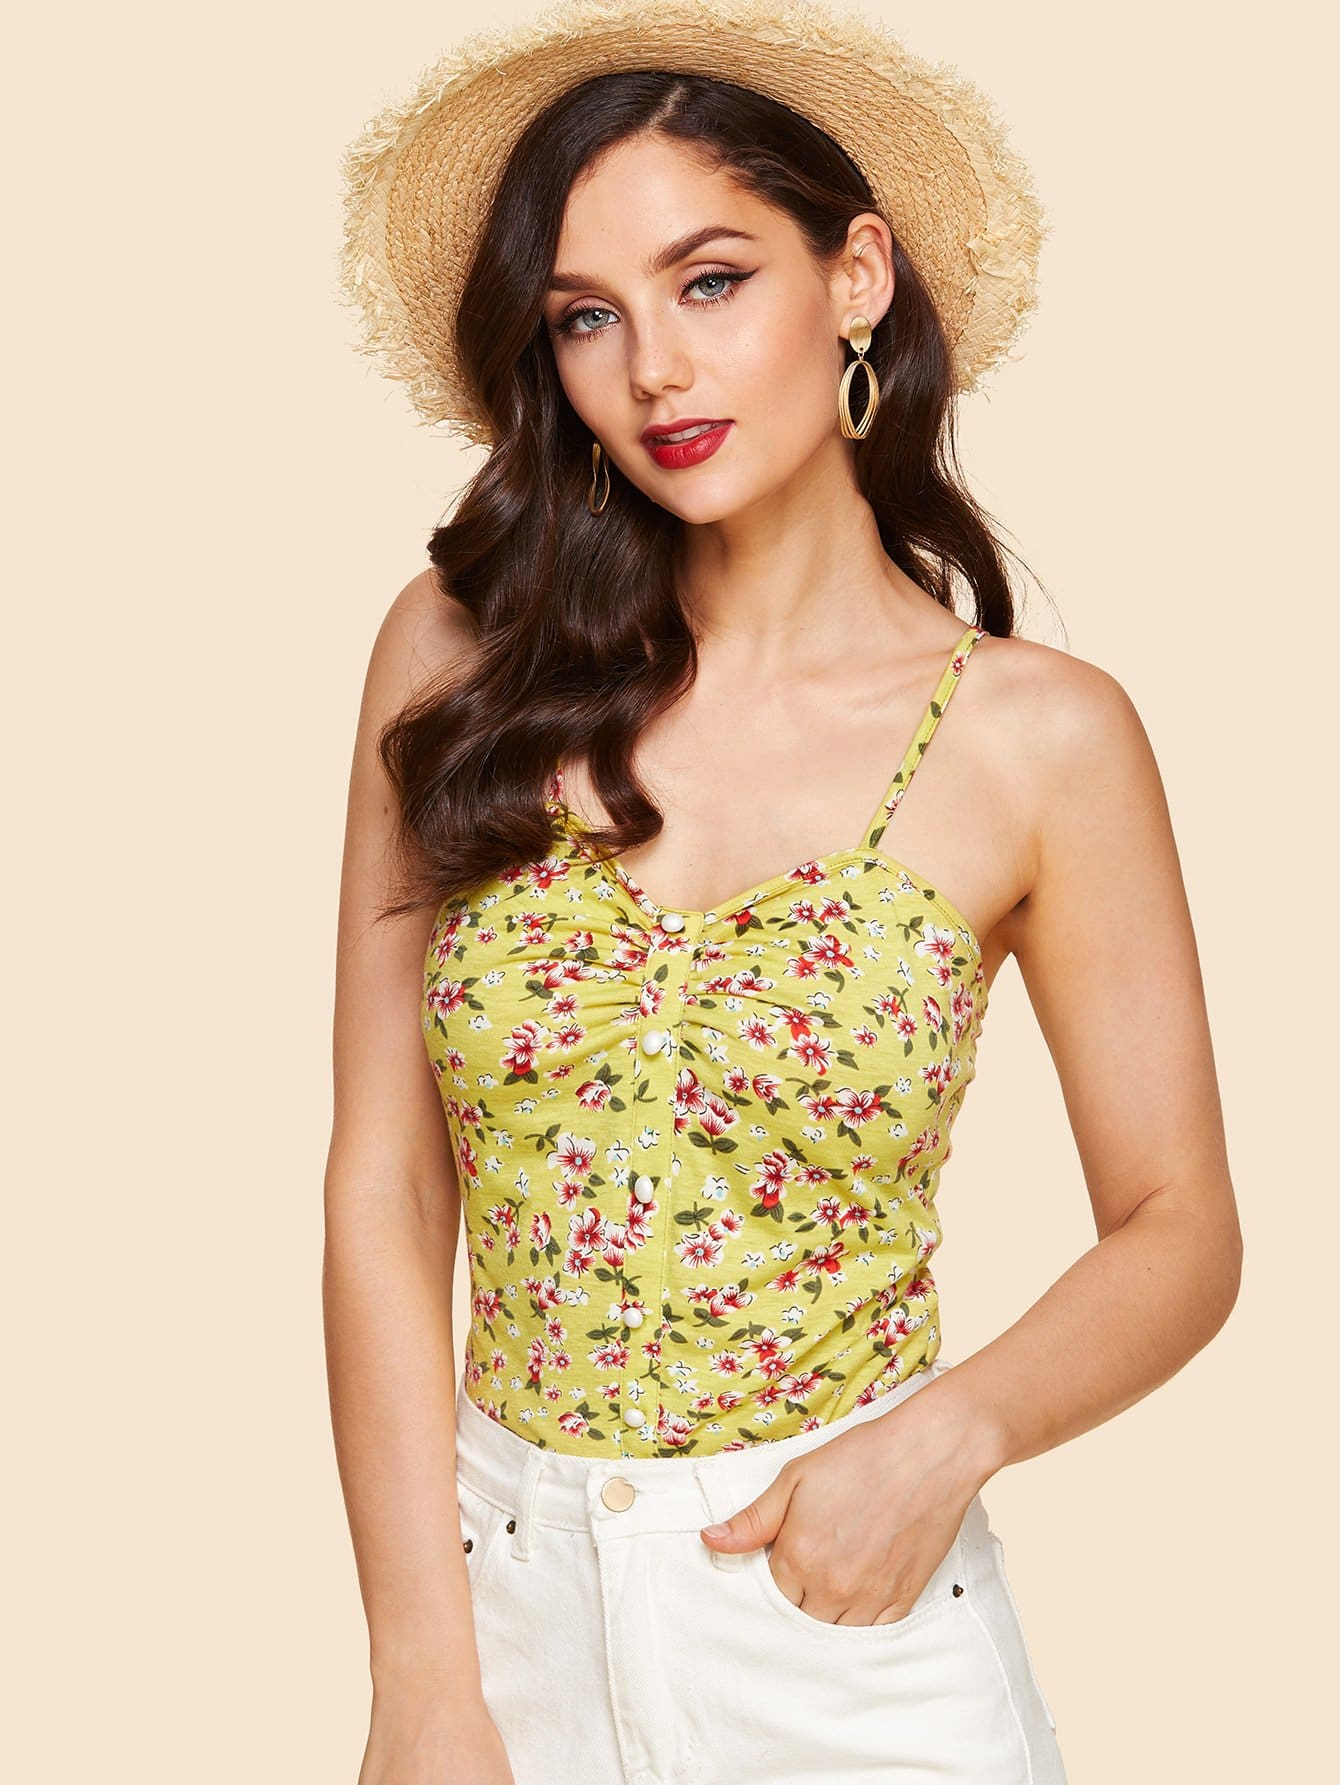 Ruched Detail Buttoned Calico Print Cami Top calico print faux pearl detail cami dress